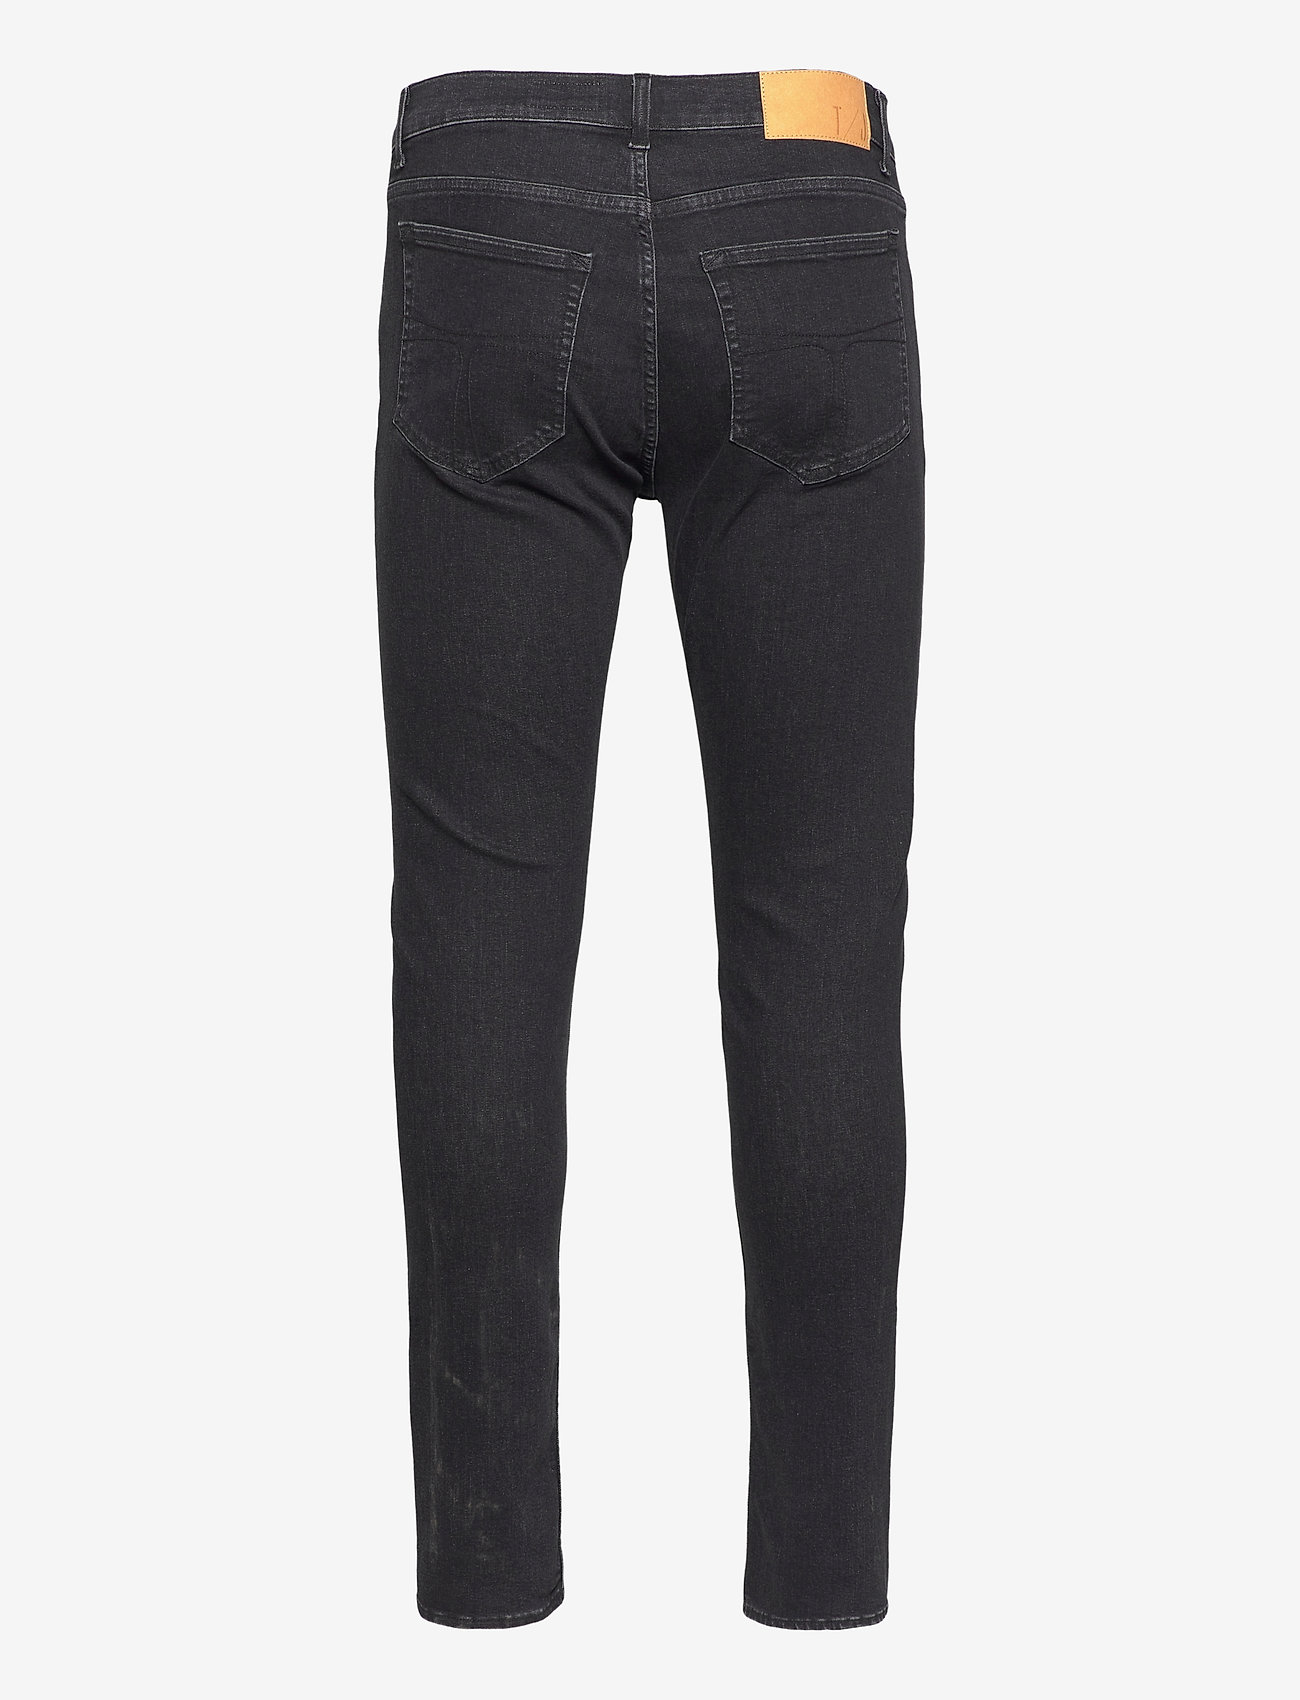 Tiger of Sweden Jeans EVOLVE - Jeans BLACK - Menn Klær